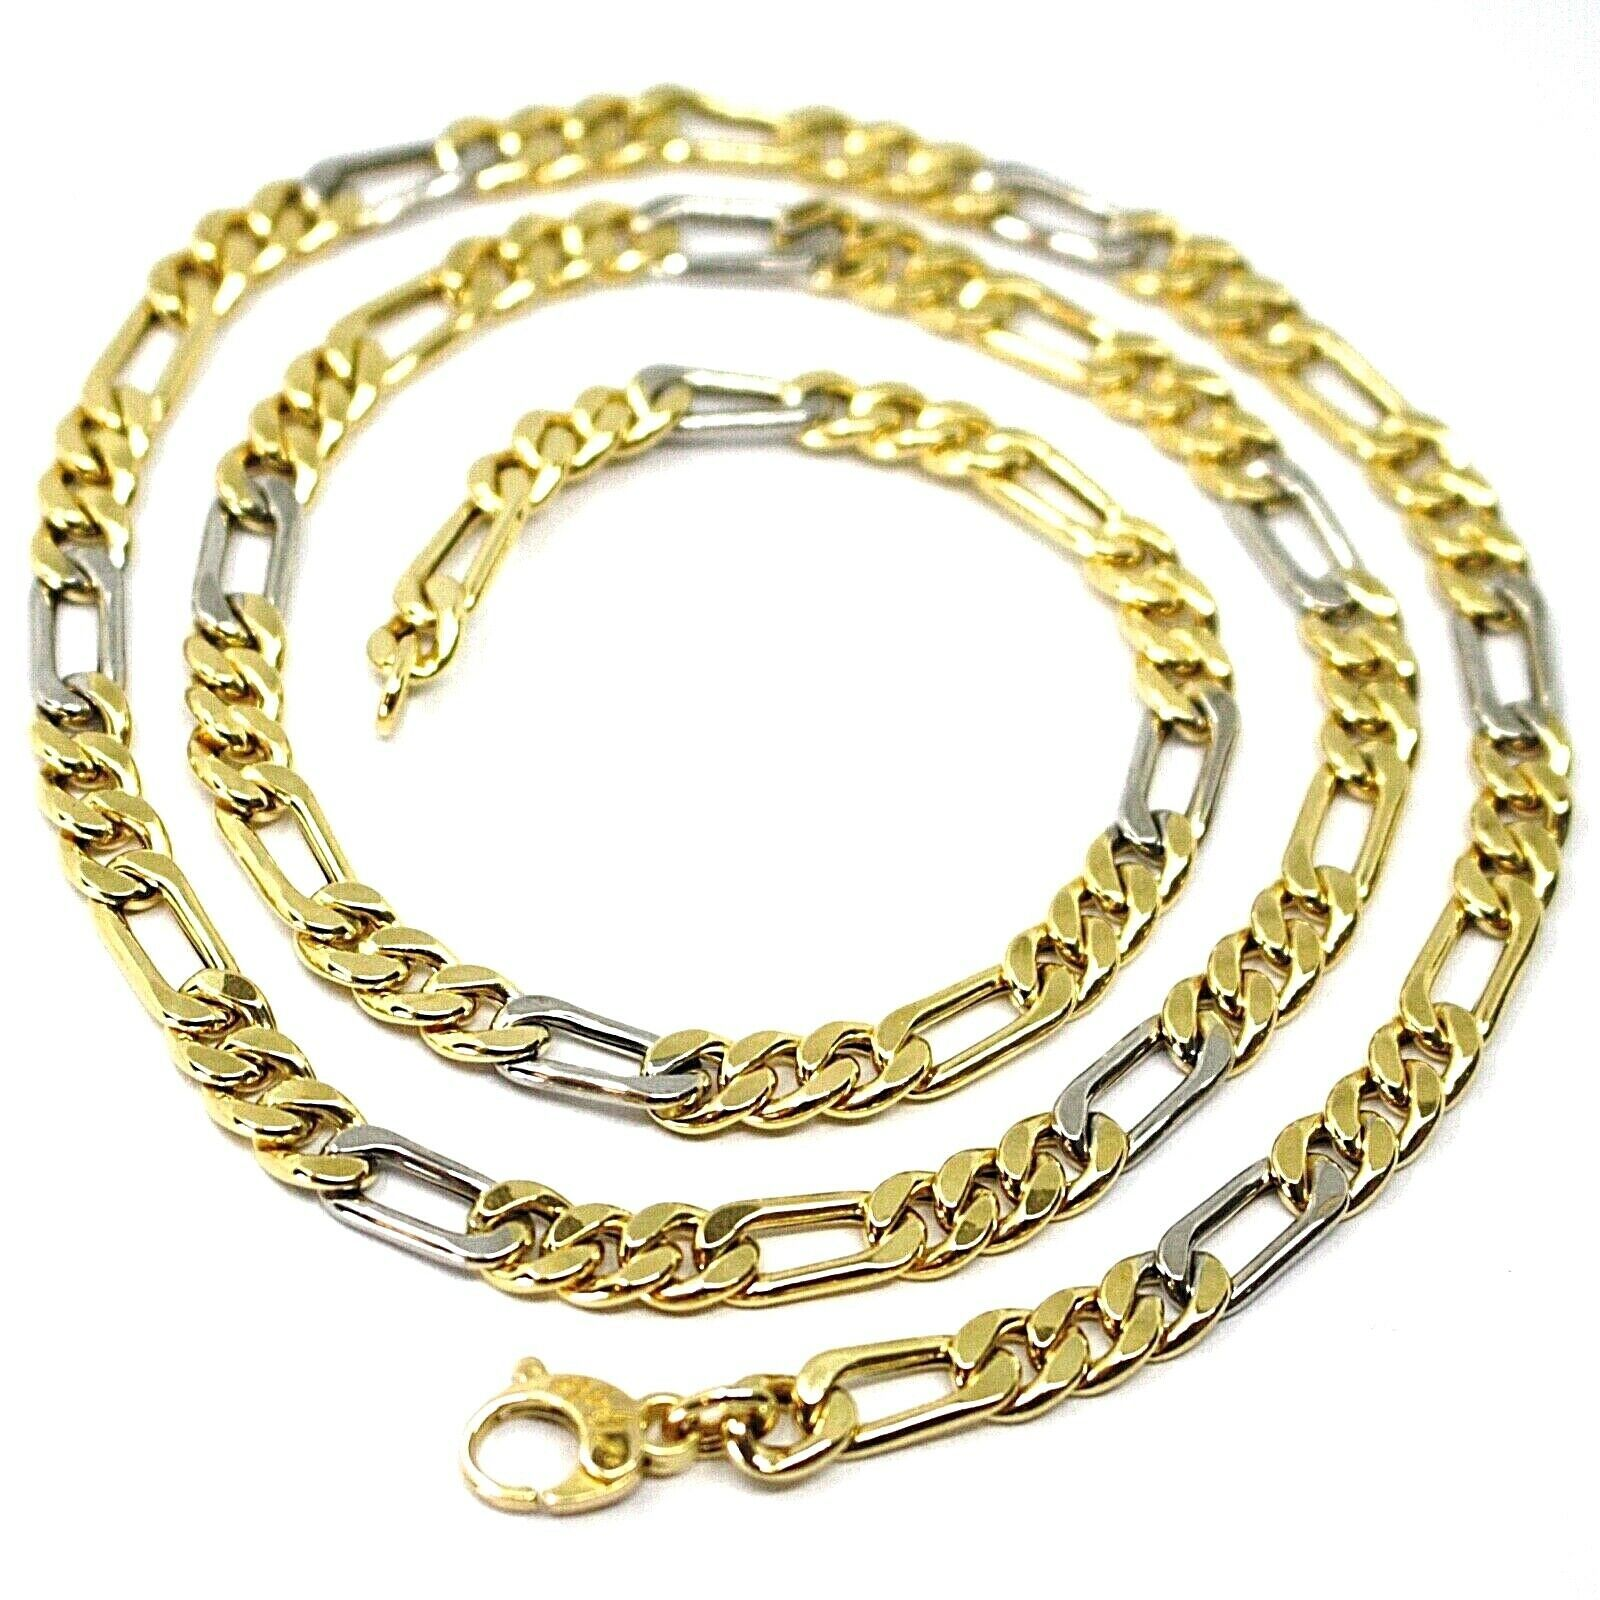 18K YELLOW WHITE GOLD CHAIN, BIG 6 MM FIGARO GOURMETTE ALTERNATE 3+1, 24 INCHES